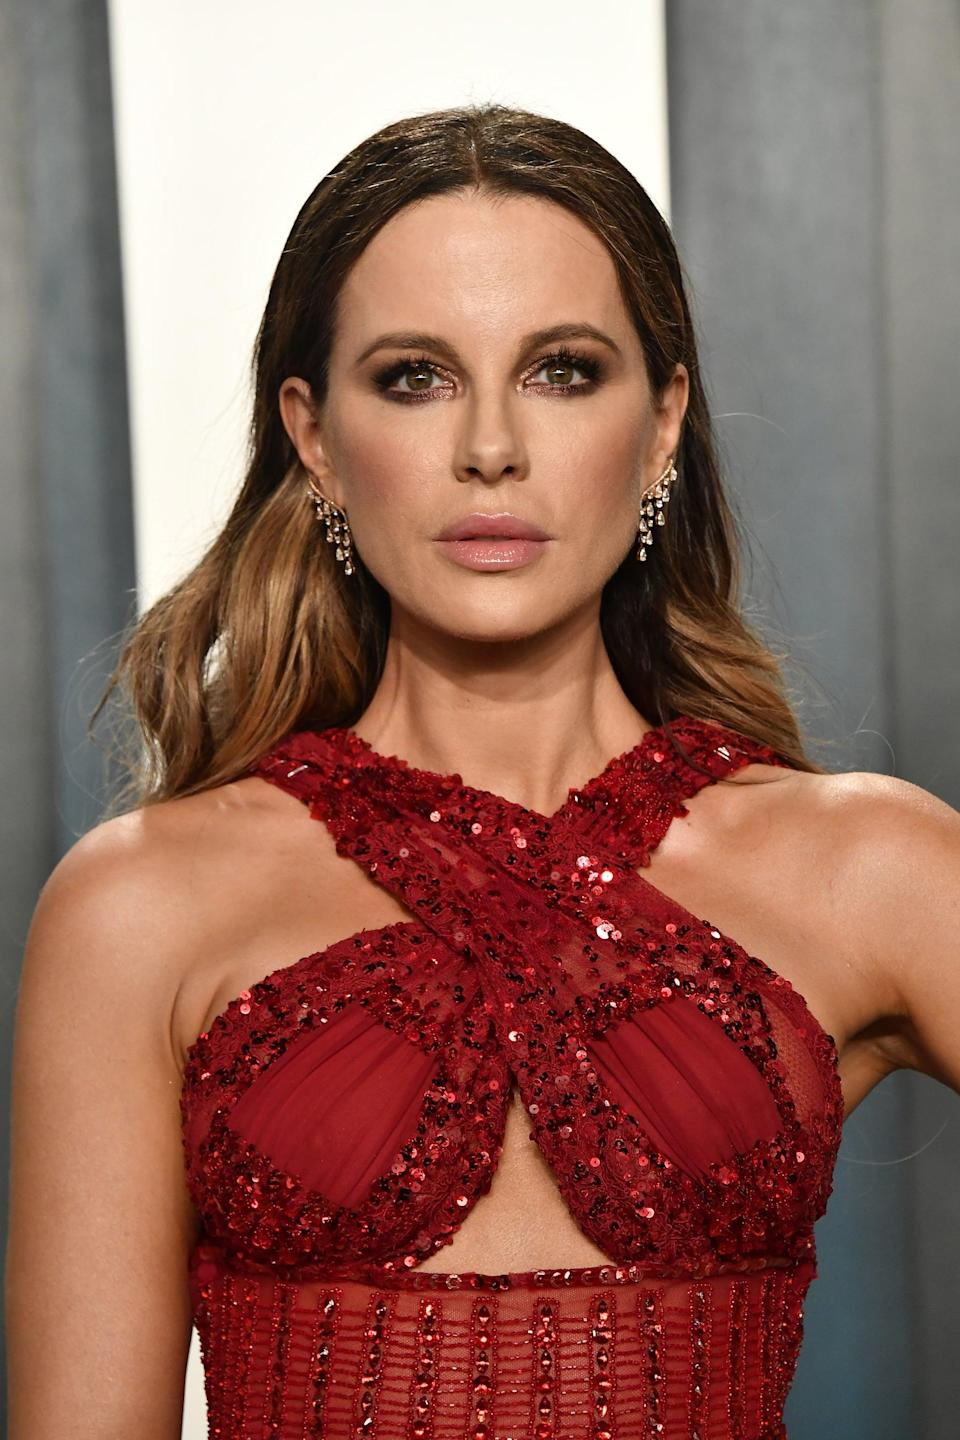 BEVERLY HILLS, CALIFORNIA - FEBRUARY 09: Kate Beckinsale attends the 2020 Vanity Fair Oscar Party hosted by Radhika Jones at Wallis Annenberg Center for the Performing Arts on February 09, 2020 in Beverly Hills, California. (Photo by Frazer Harrison/Getty Images)